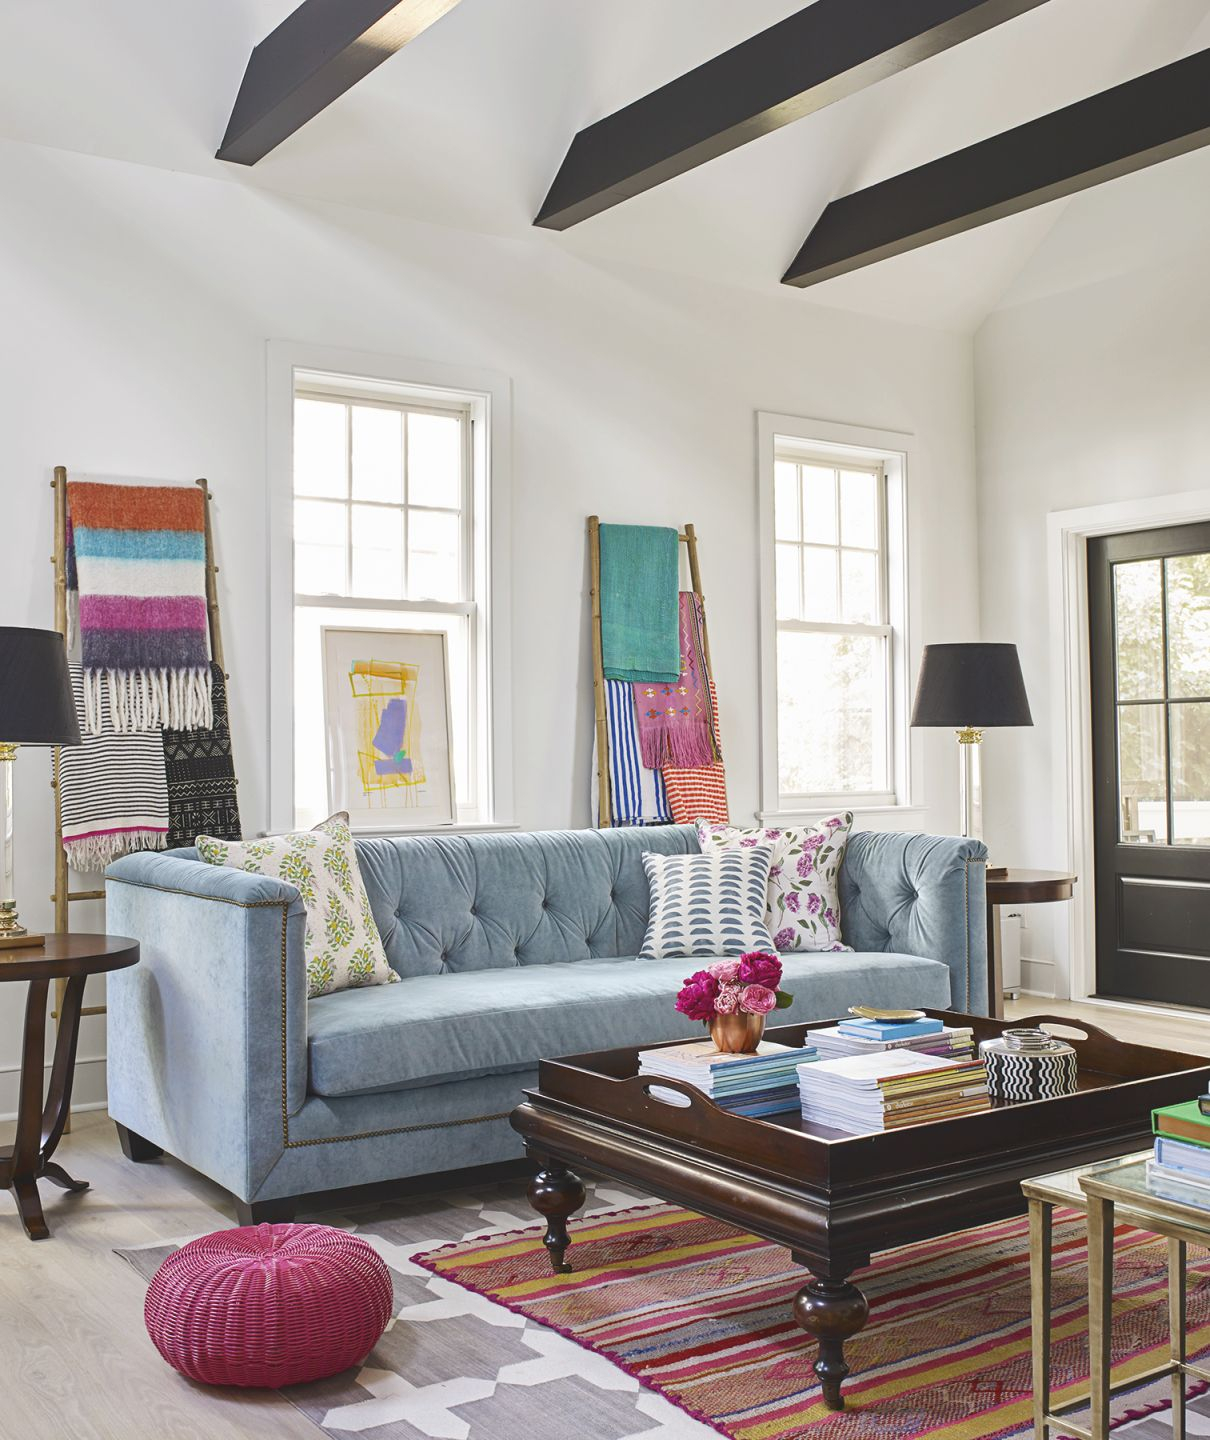 4 Simple Rules For Decorating Any Type Of Living Room | Real with regard to Awesome Sample Living Room Decor